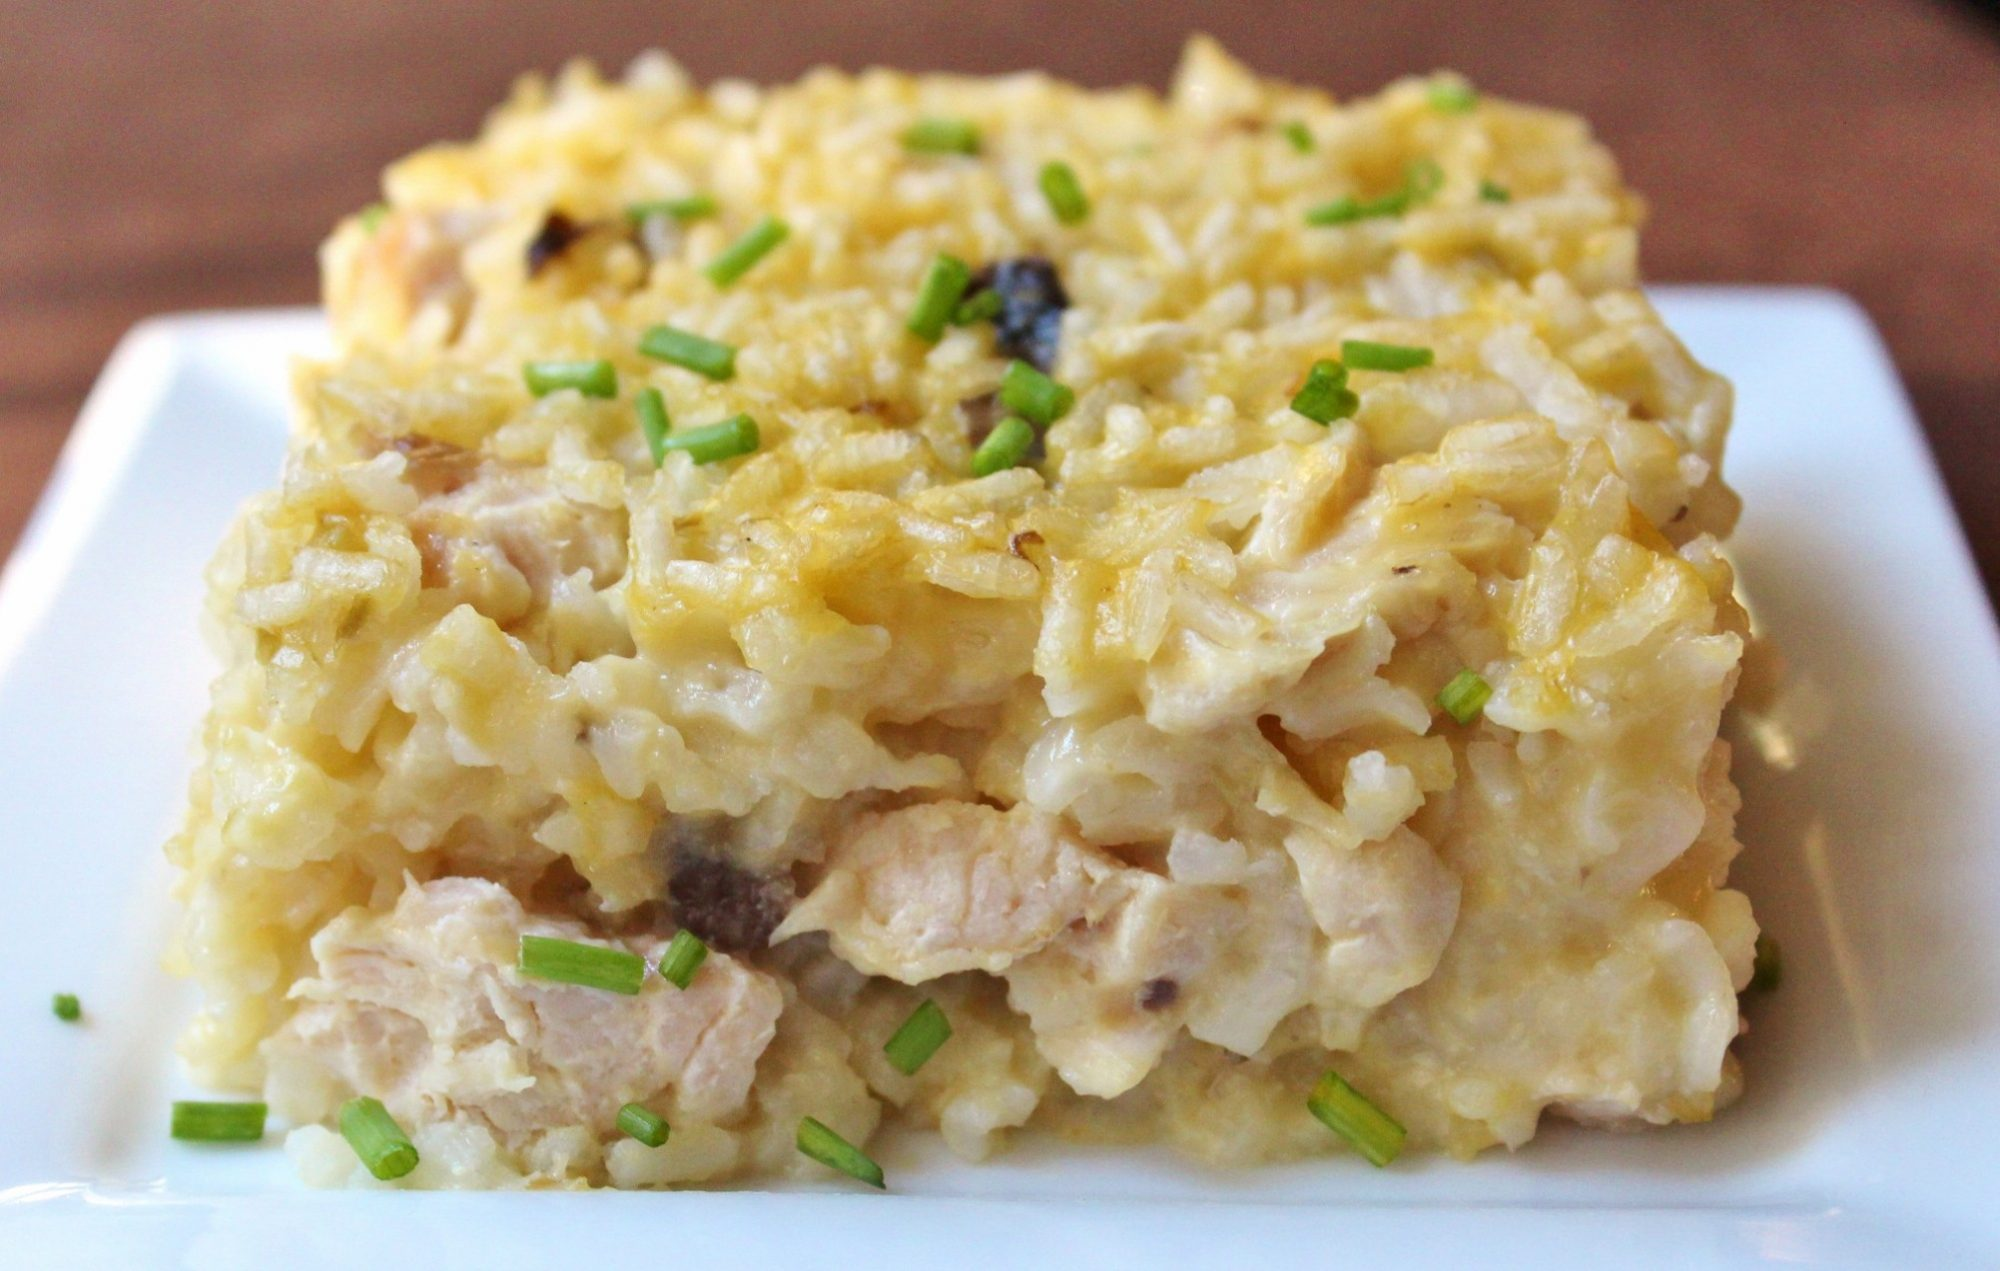 1040851-Mamaws-Chicken-and-Rice-Casserole-photo-by-mis7up-e1438883631938.jpg